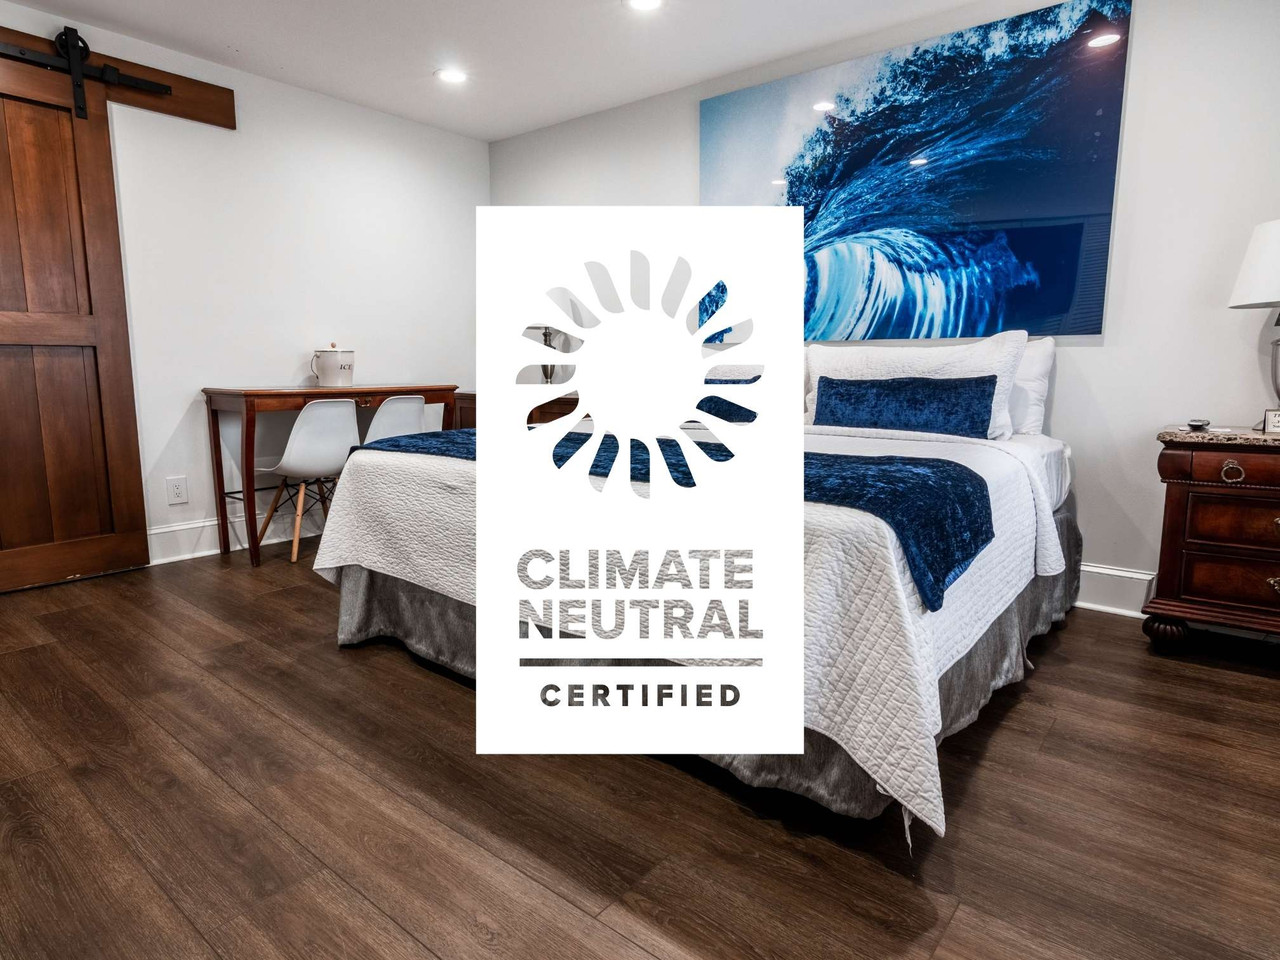 We're Climate Neutral Certified - Here's What That Means